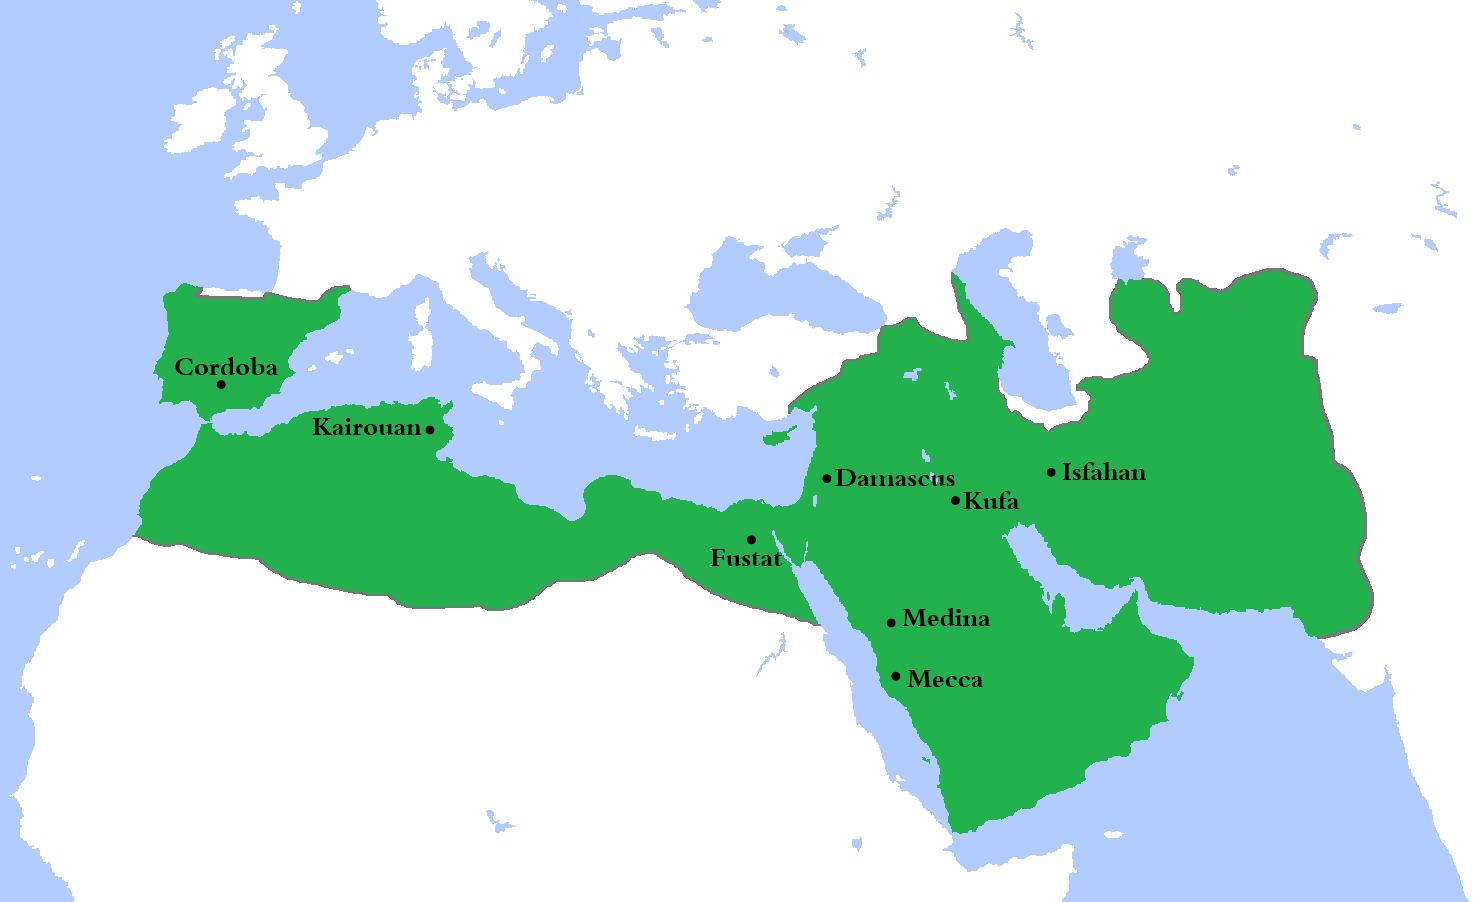 https://i2.wp.com/upload.wikimedia.org/wikipedia/commons/5/5b/Umayyad750ADloc.png